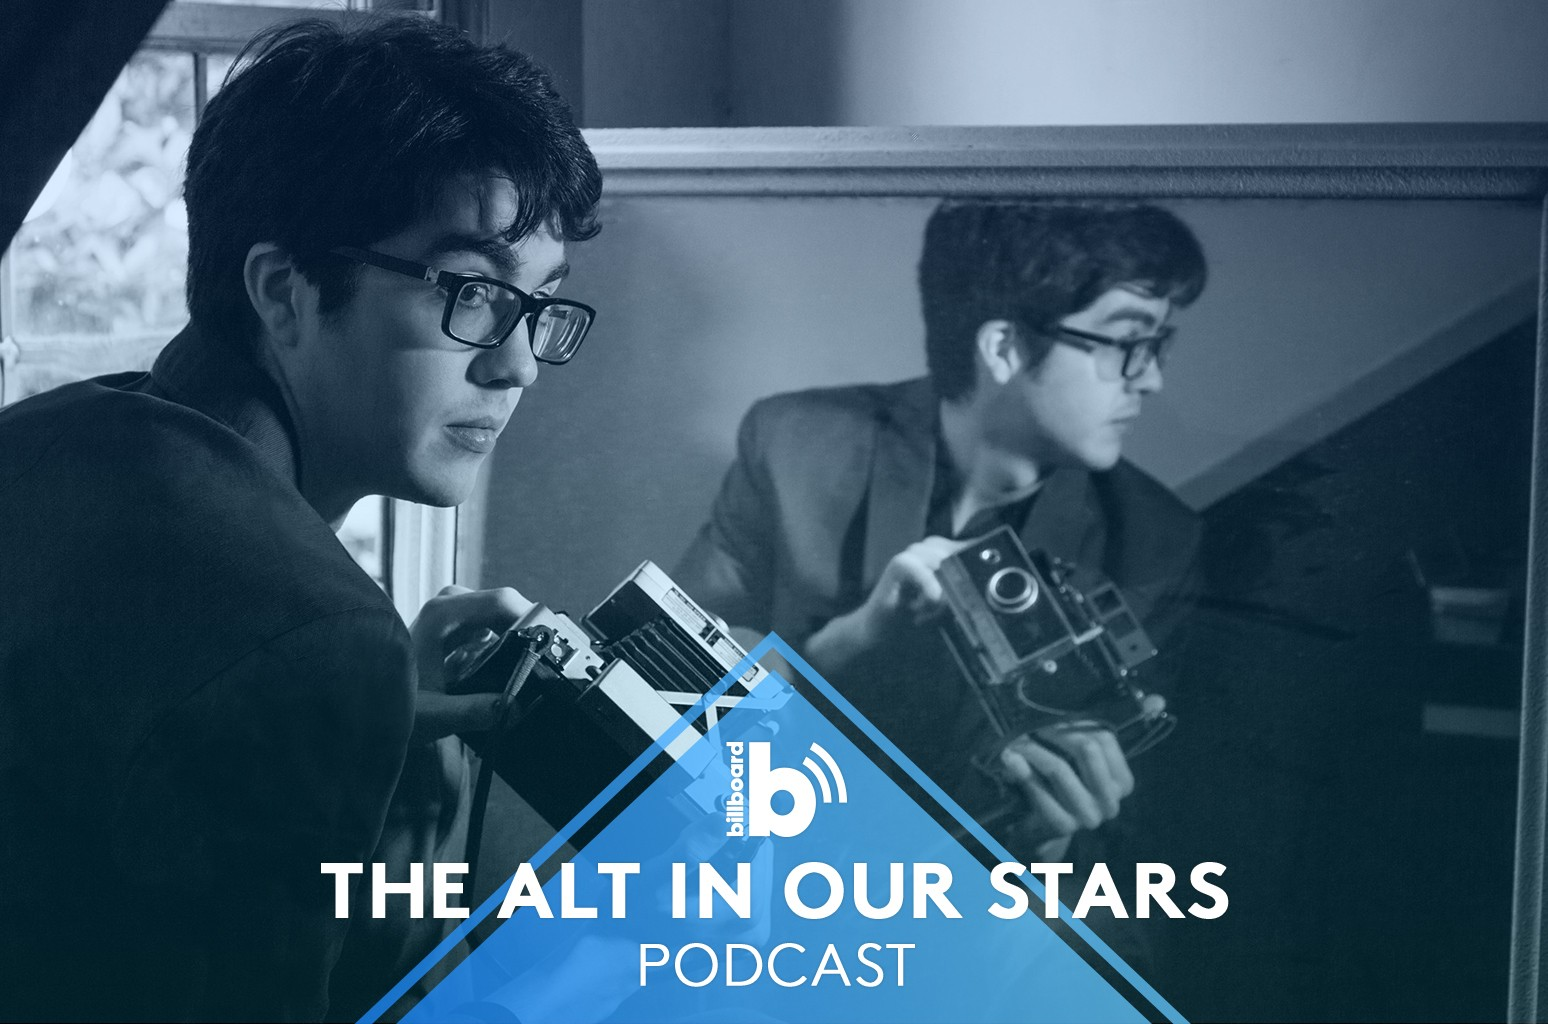 The Alt in Our Stars Podcast featuring: Car Seat Headrest